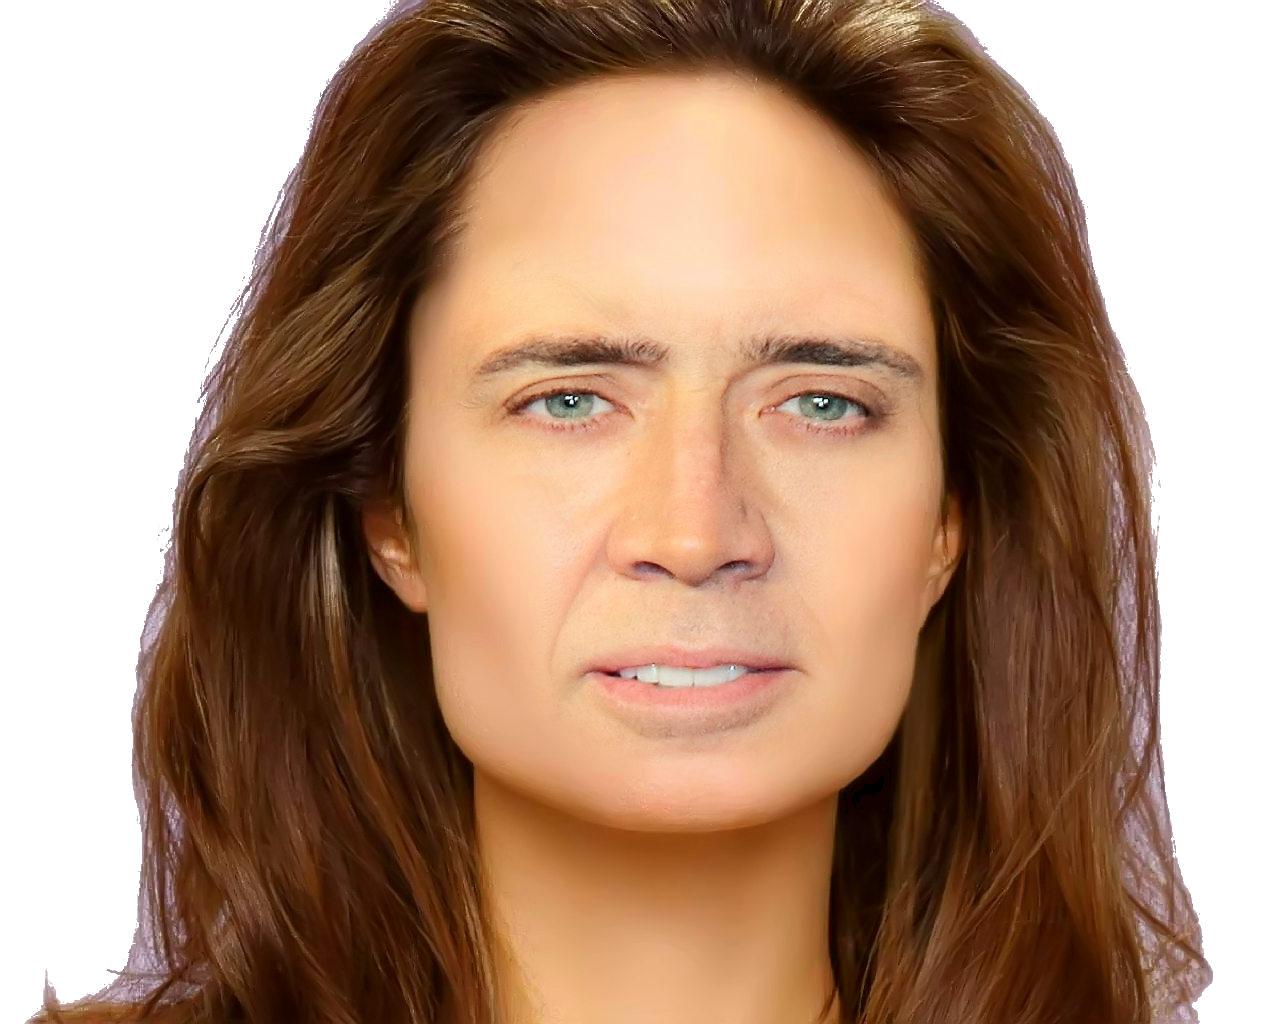 Nicolas cage meme face png. Angelina